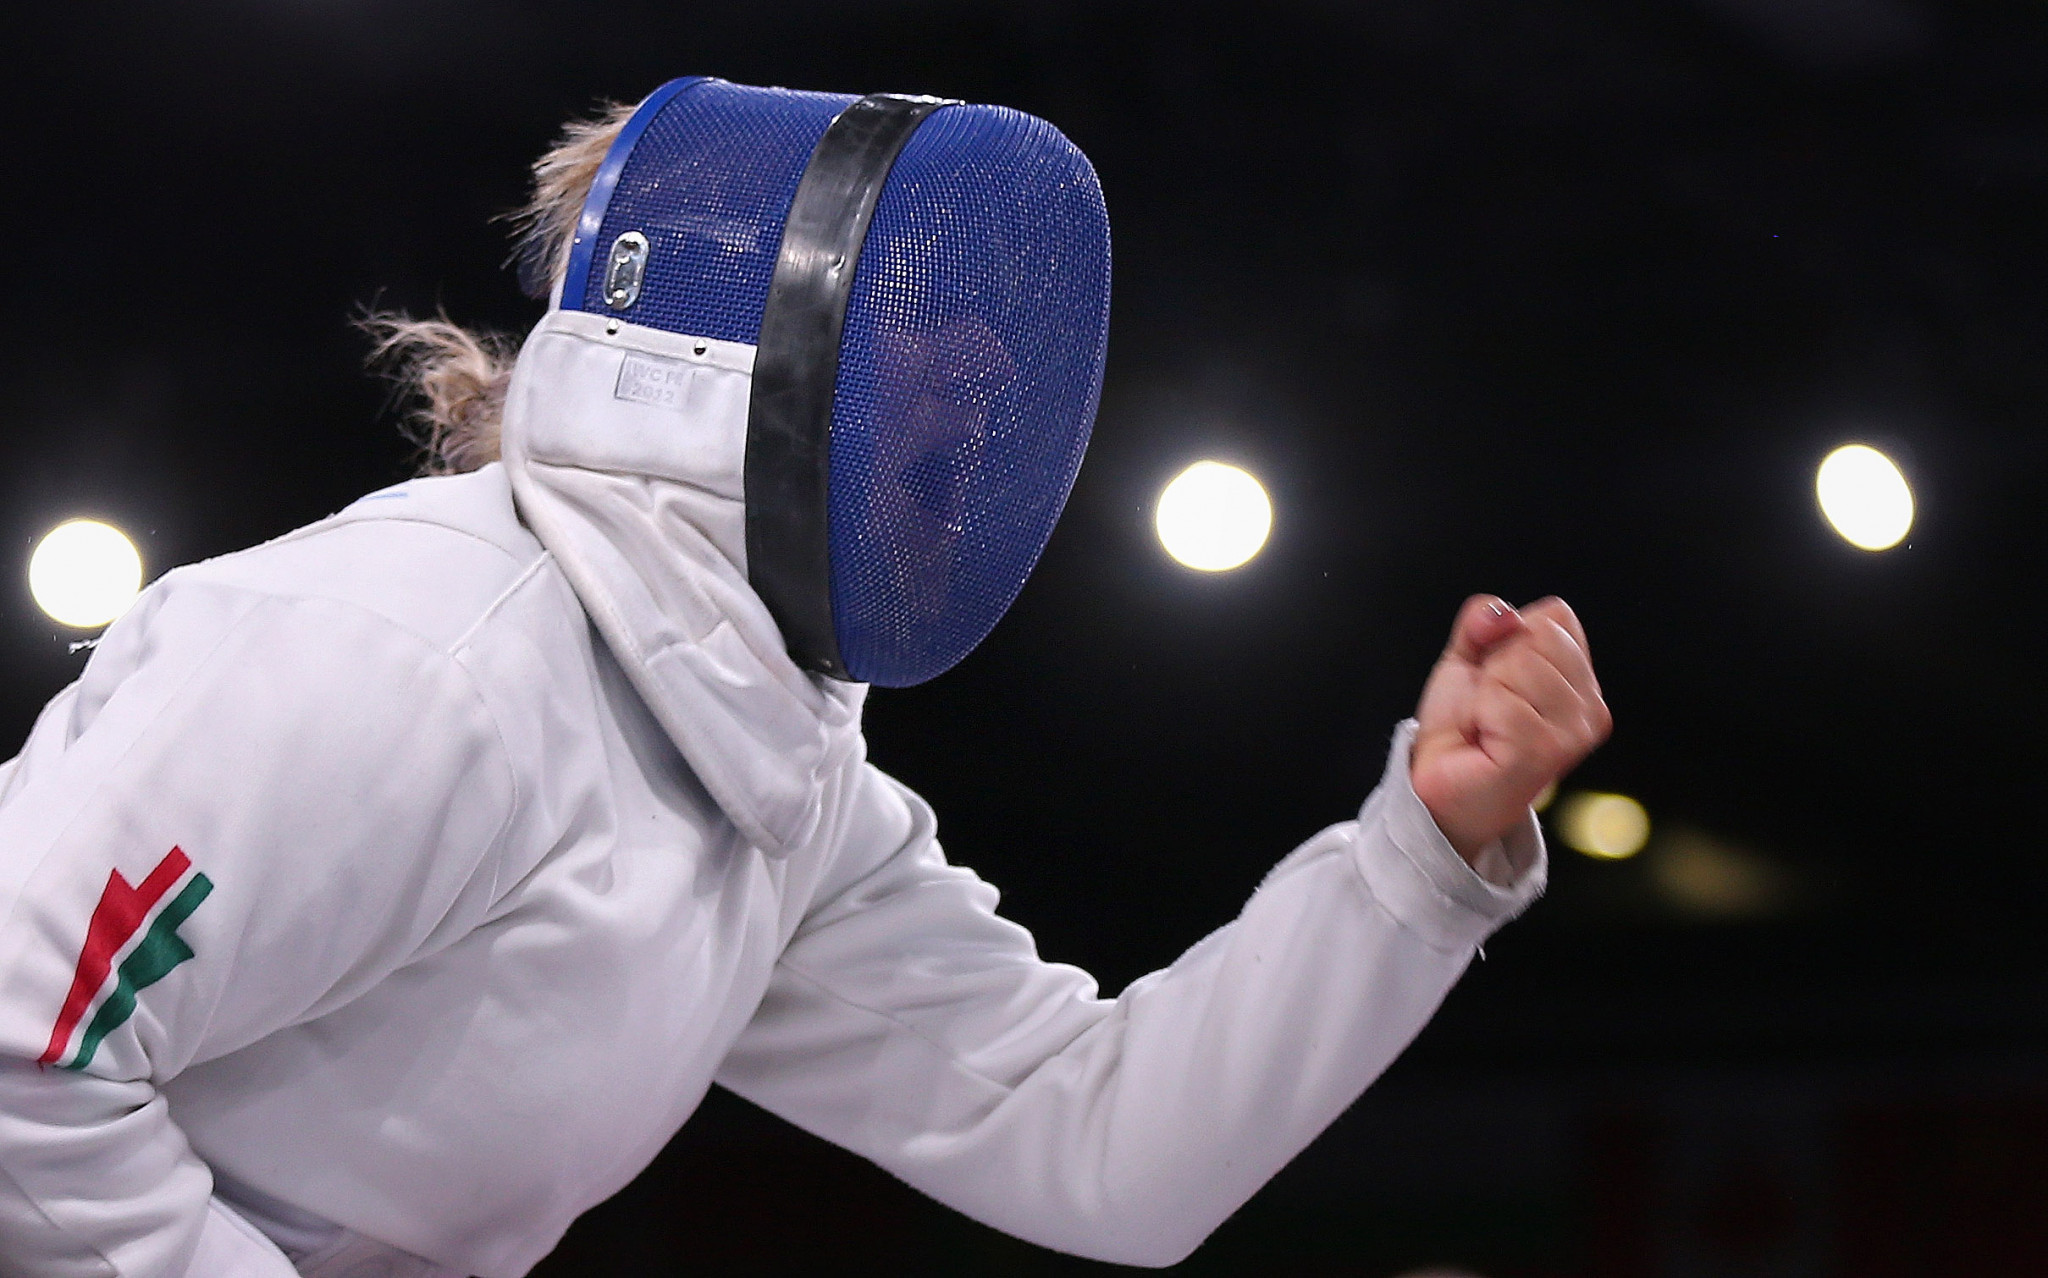 Zsuzsanna Krajnyák won an all-Hungarian final to top the podium in the women's foil A category ©Getty Images